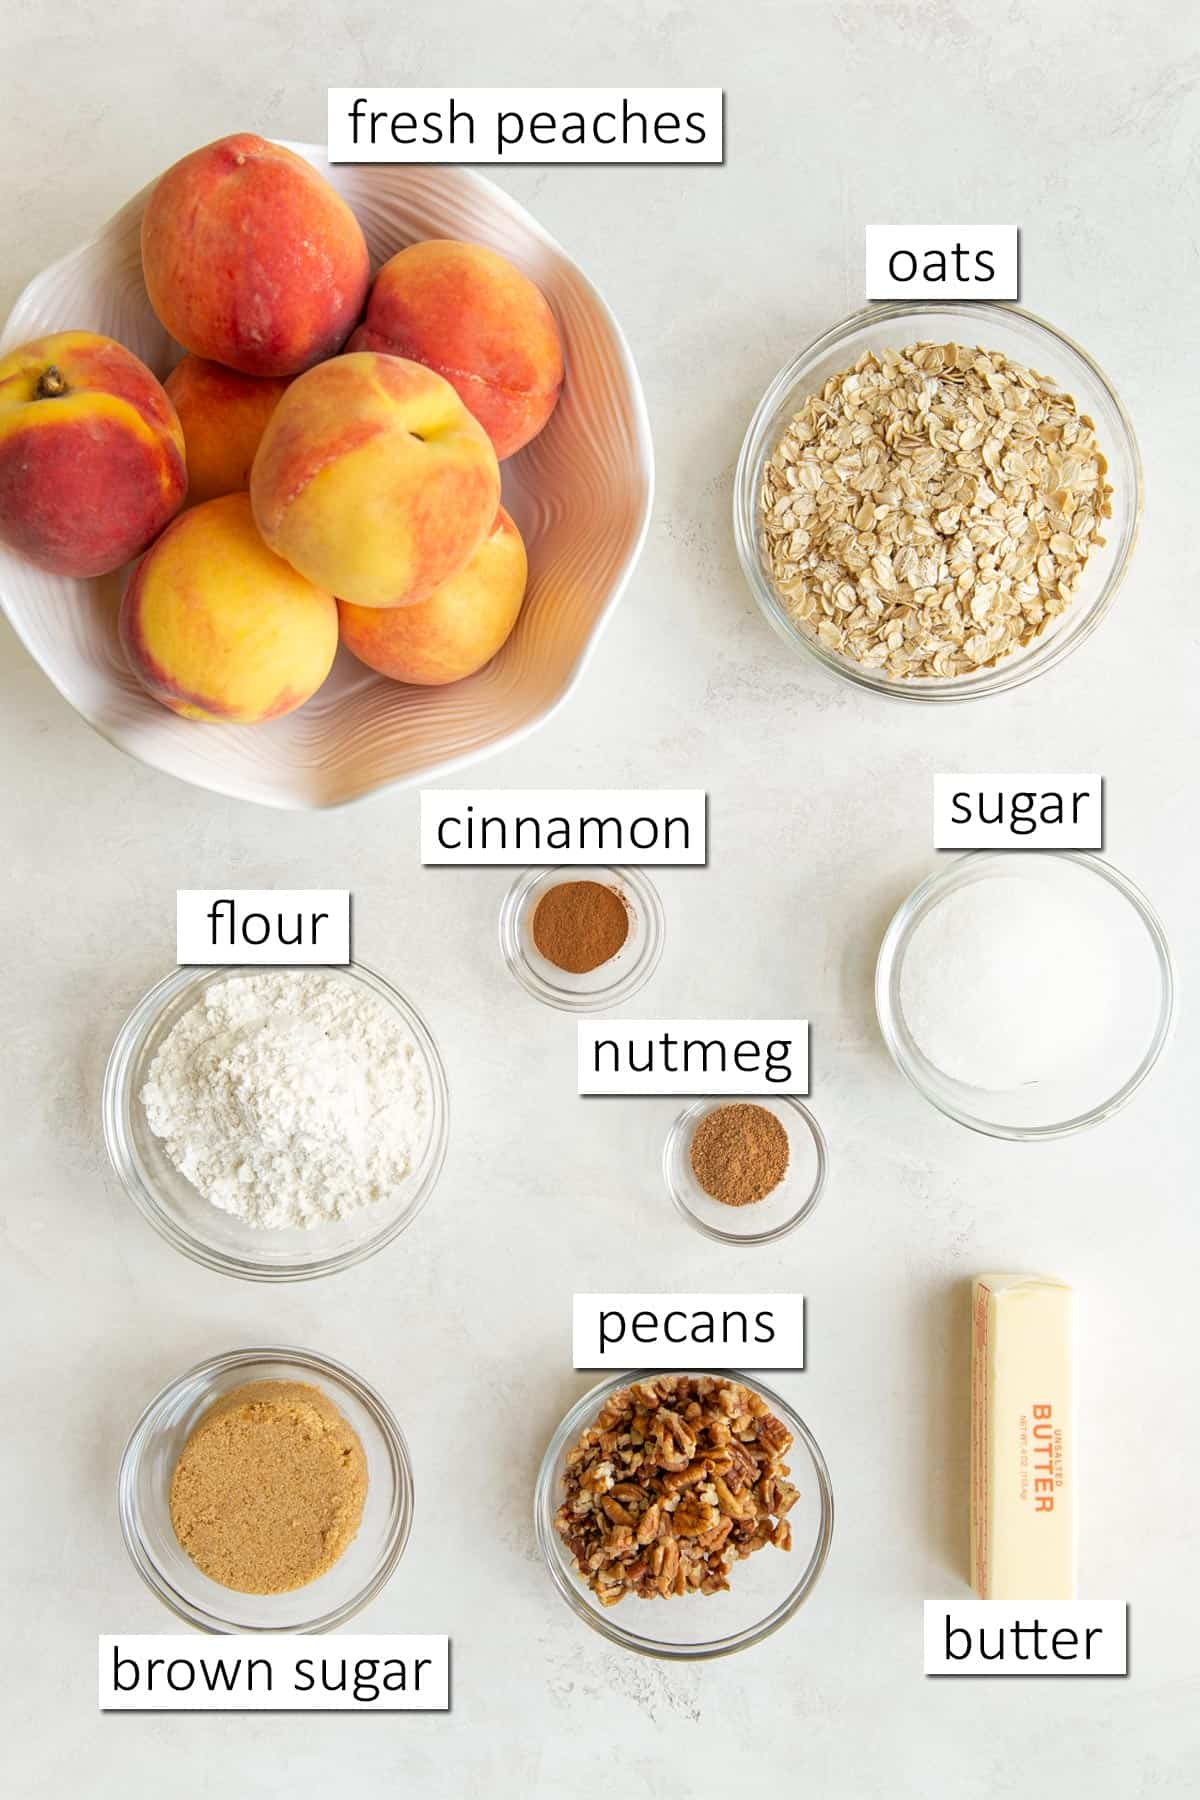 Overhead view of ingredients for making fresh peach crisp.